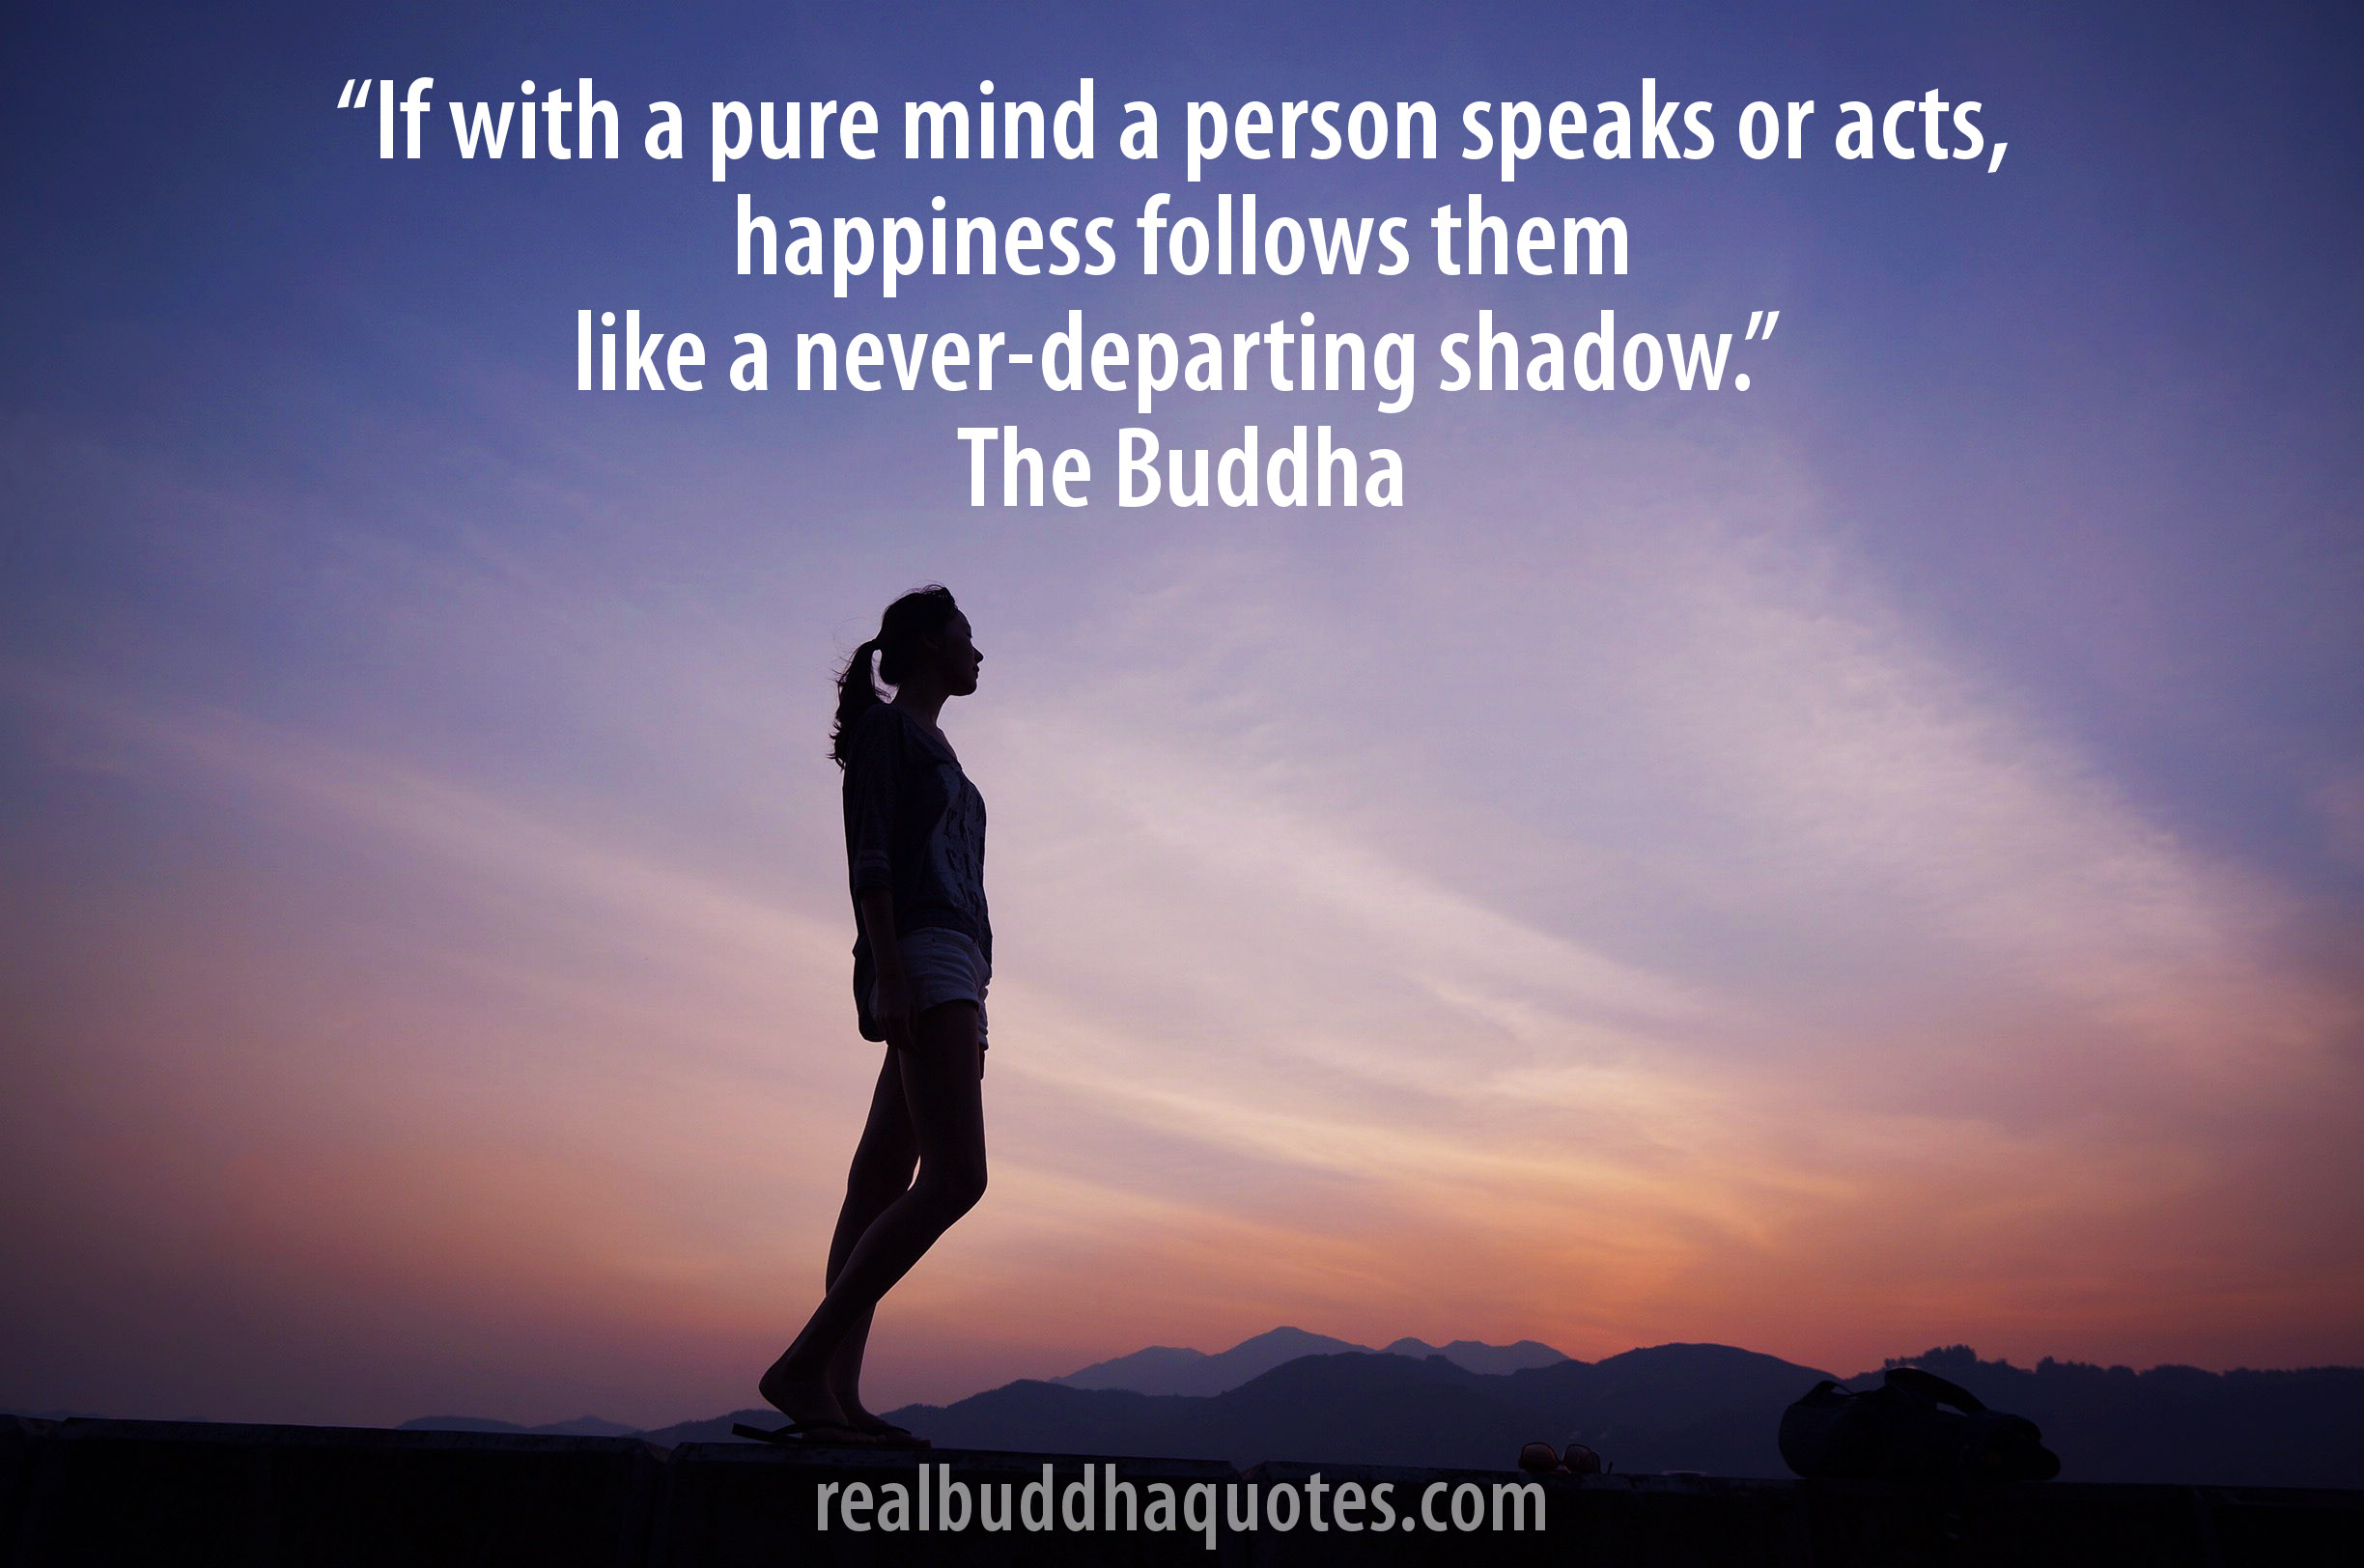 Buddha Quotes On Happiness Magnificent If With A Pure Mind A Person Speaks Or Acts Happiness Follows